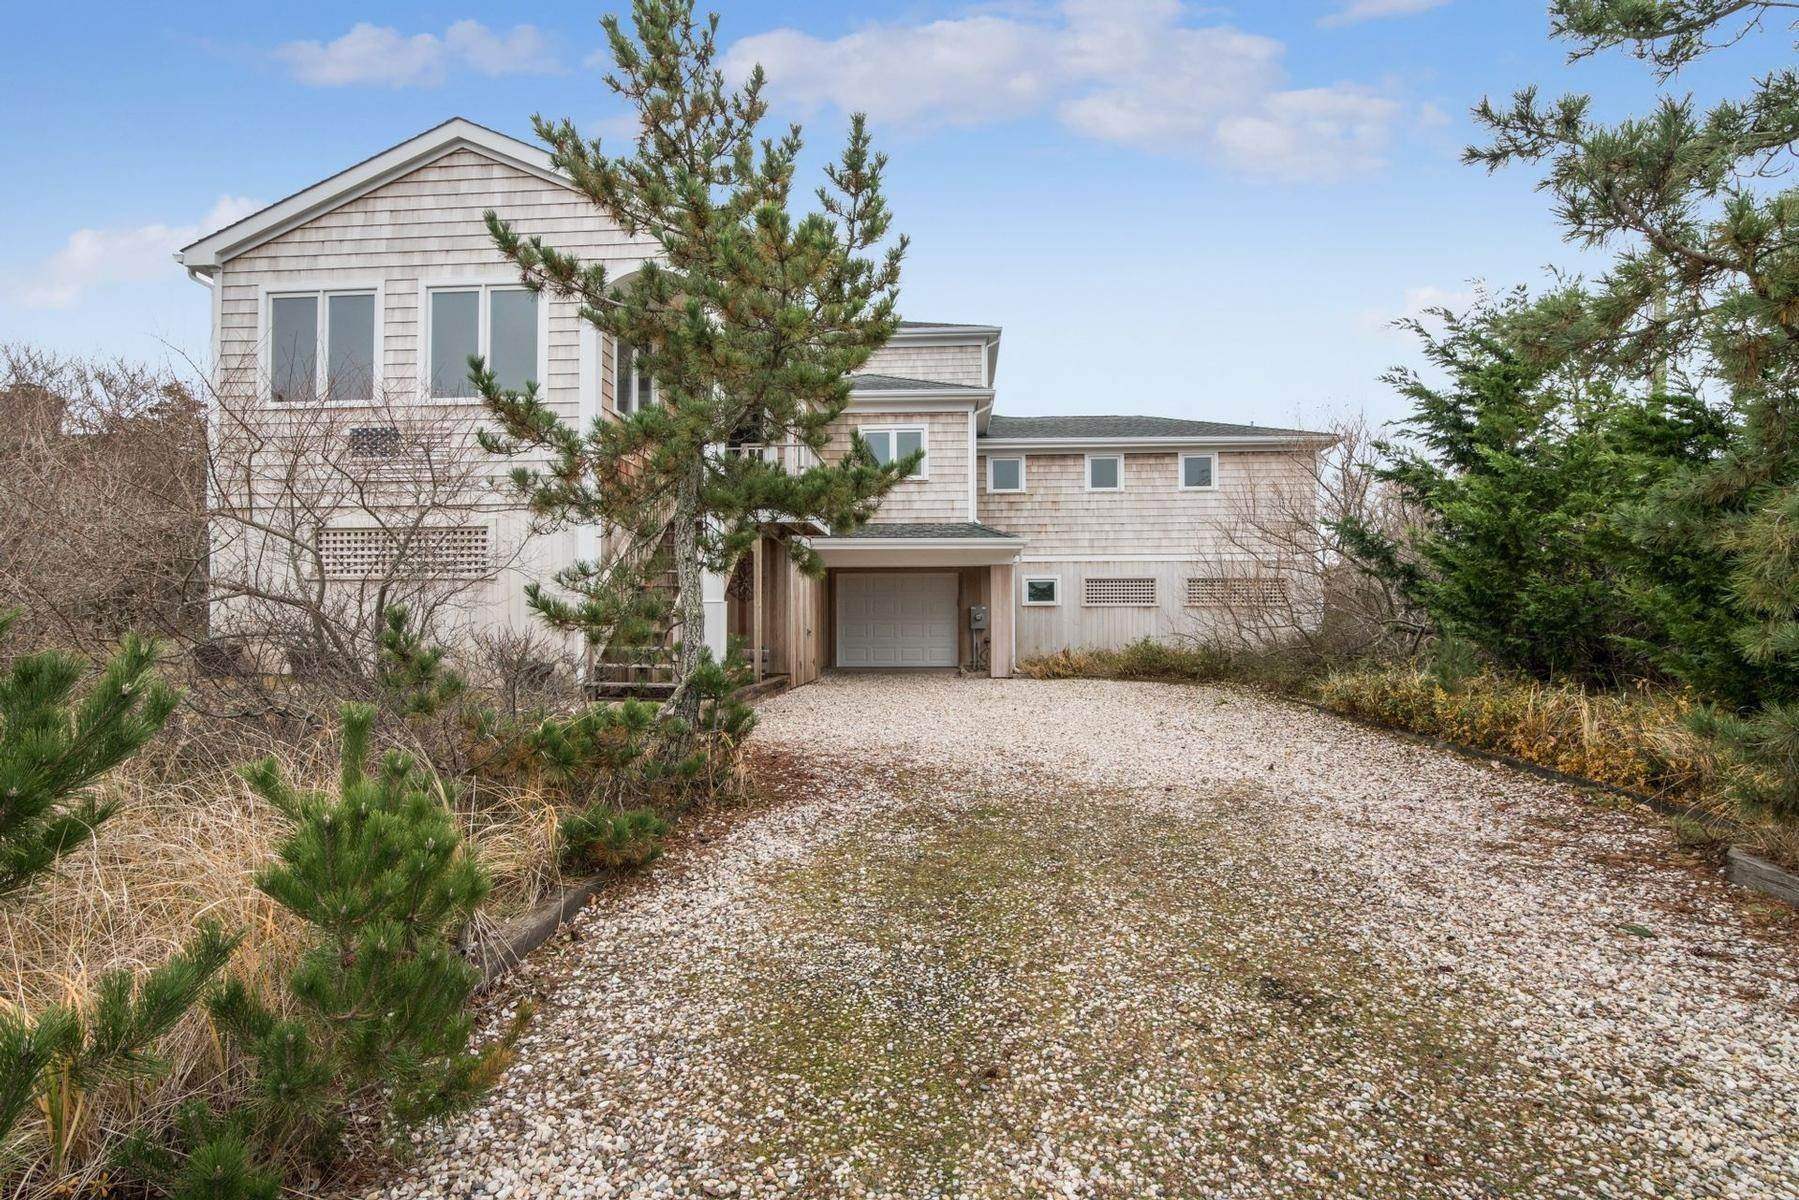 21. Single Family Home at Amagansett Oceanfront Amagansett, NY 11930